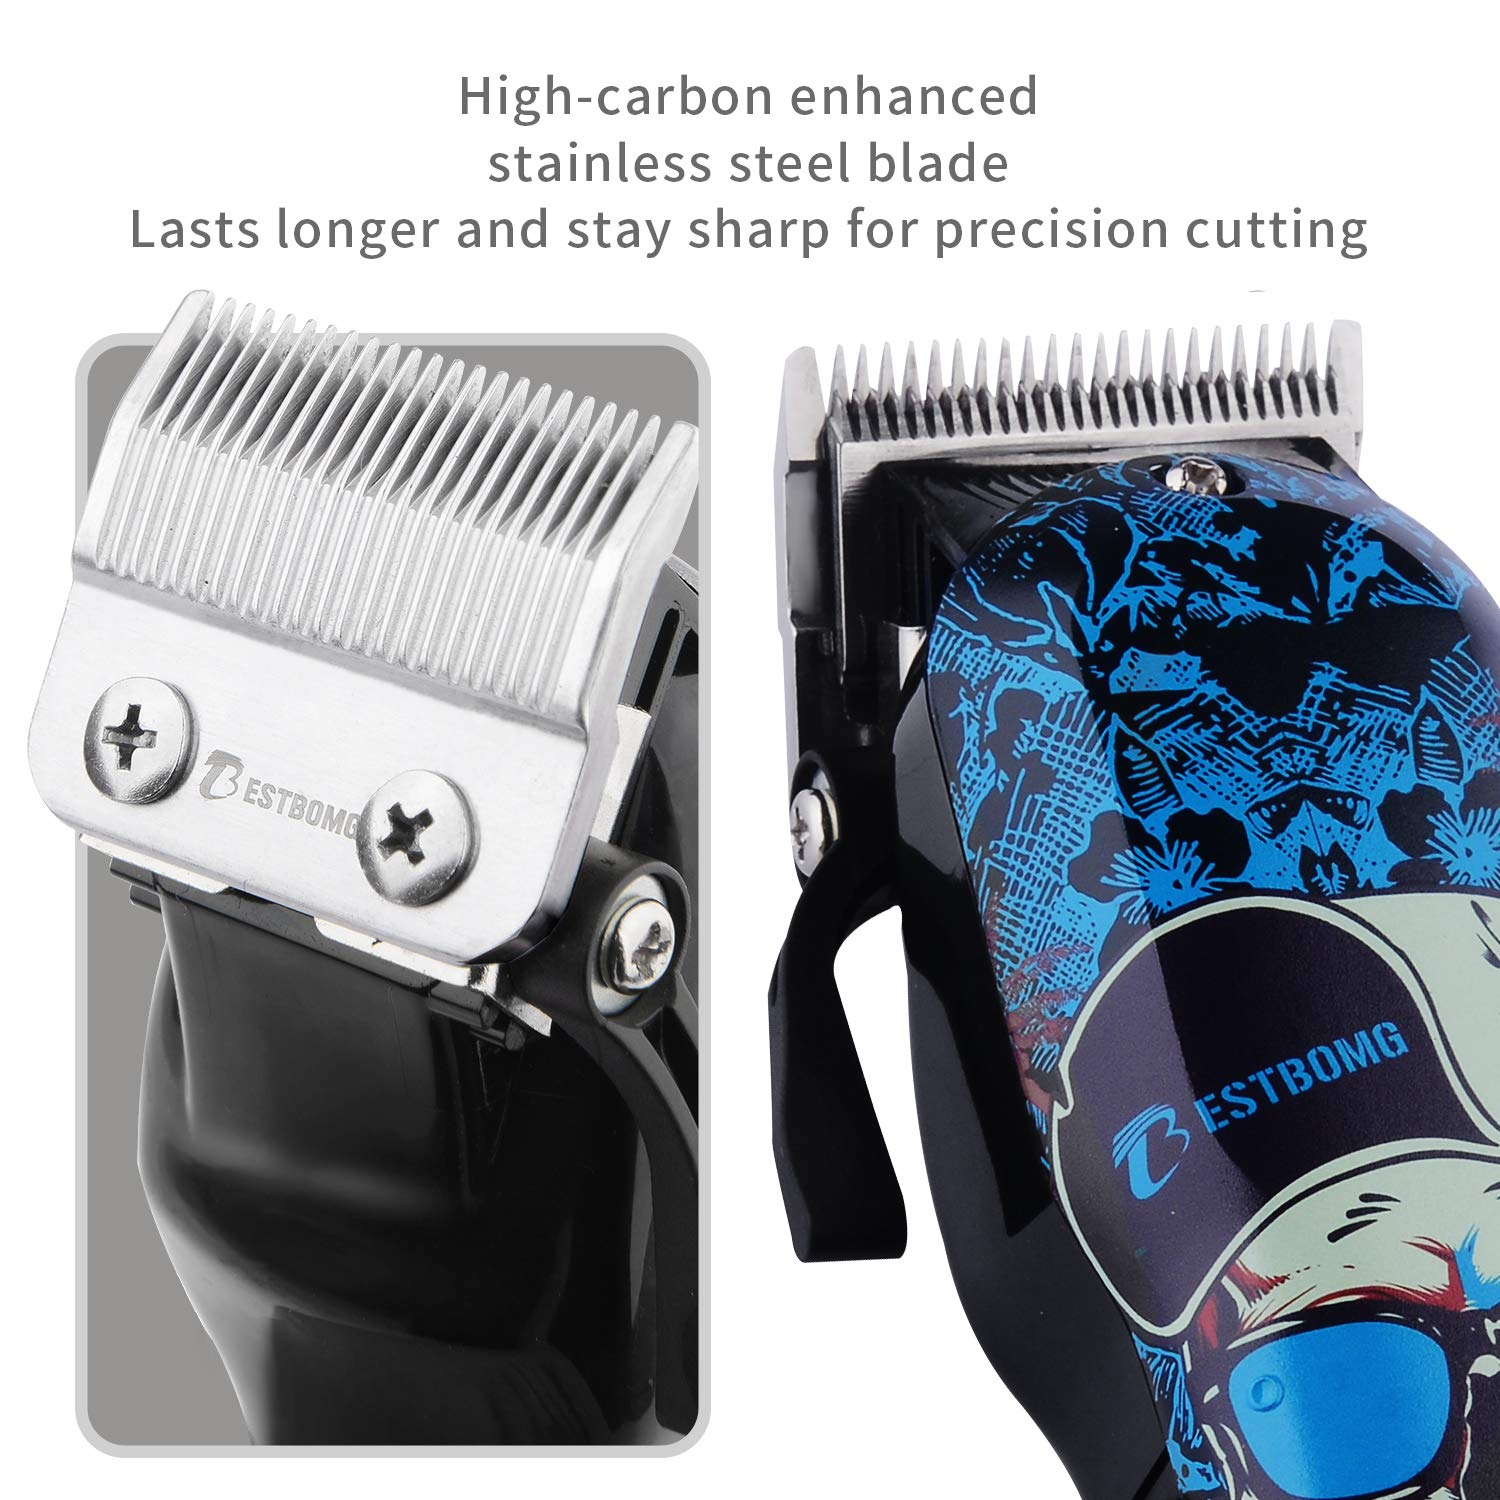 Professional Hair Trimmer Cordless Hair Clippers Beard Trimmer For Men Kids Professional Hair Cutting Kit Set with Taper Lever, Rechargeable Li-ion Battery 2000mAh Heavy Duty Motor, Detachable Cord